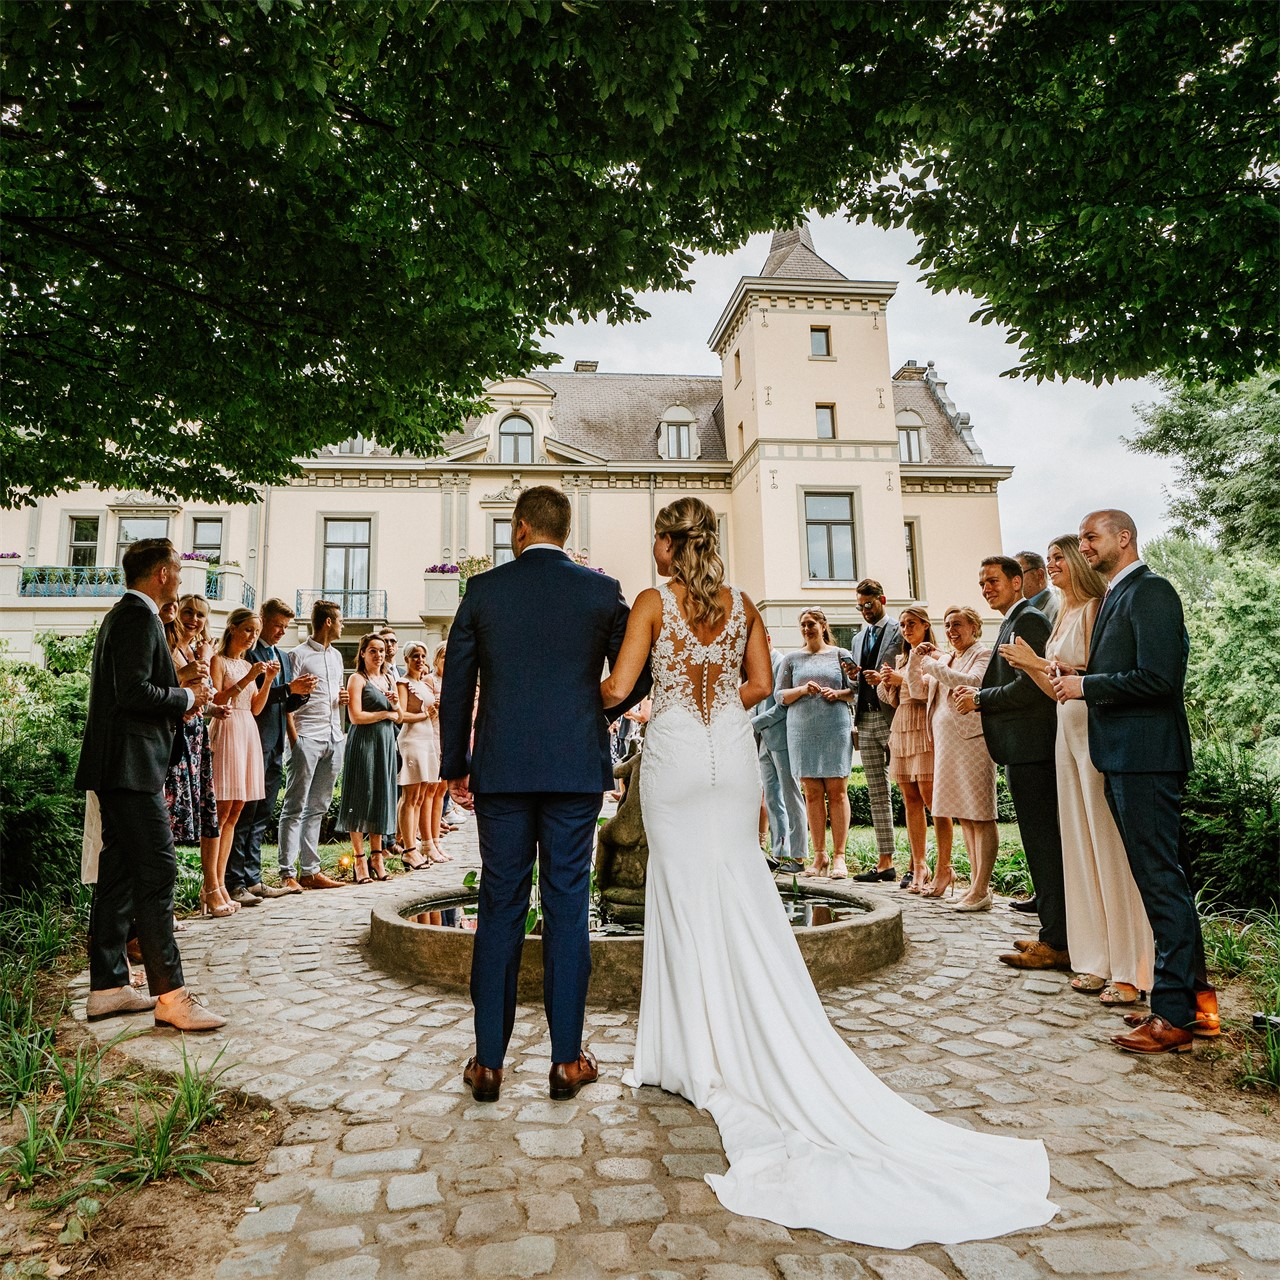 Landgoed Kasteel De Hoogenweerth - Just Married!